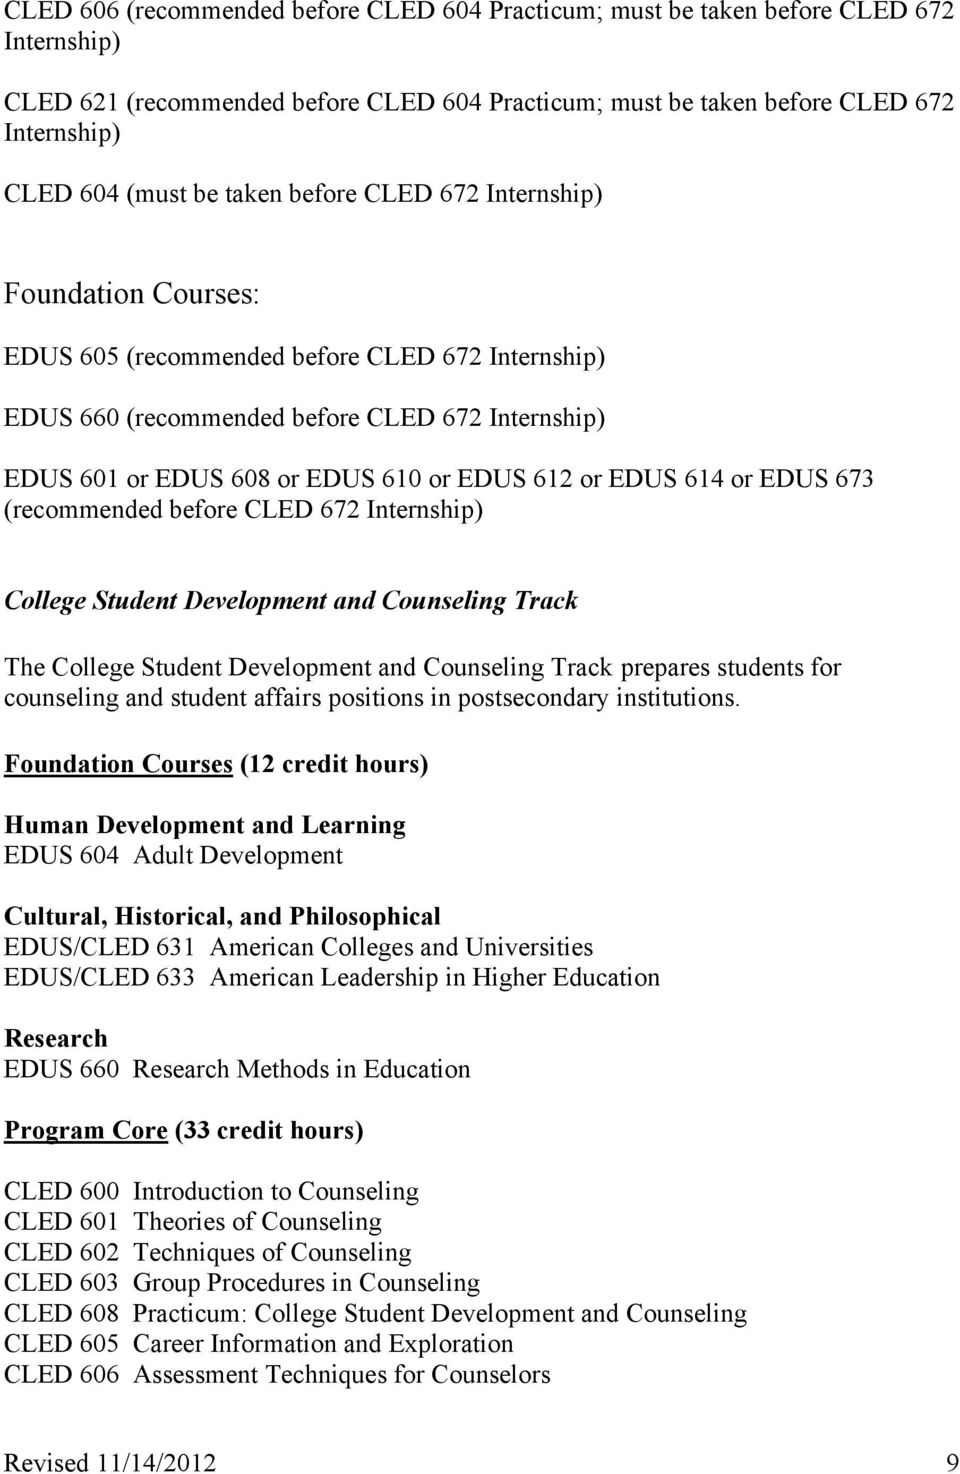 or EDUS 614 or EDUS 673 (recommended before CLED 672 Internship) College Student Development and Counseling Track The College Student Development and Counseling Track prepares students for counseling